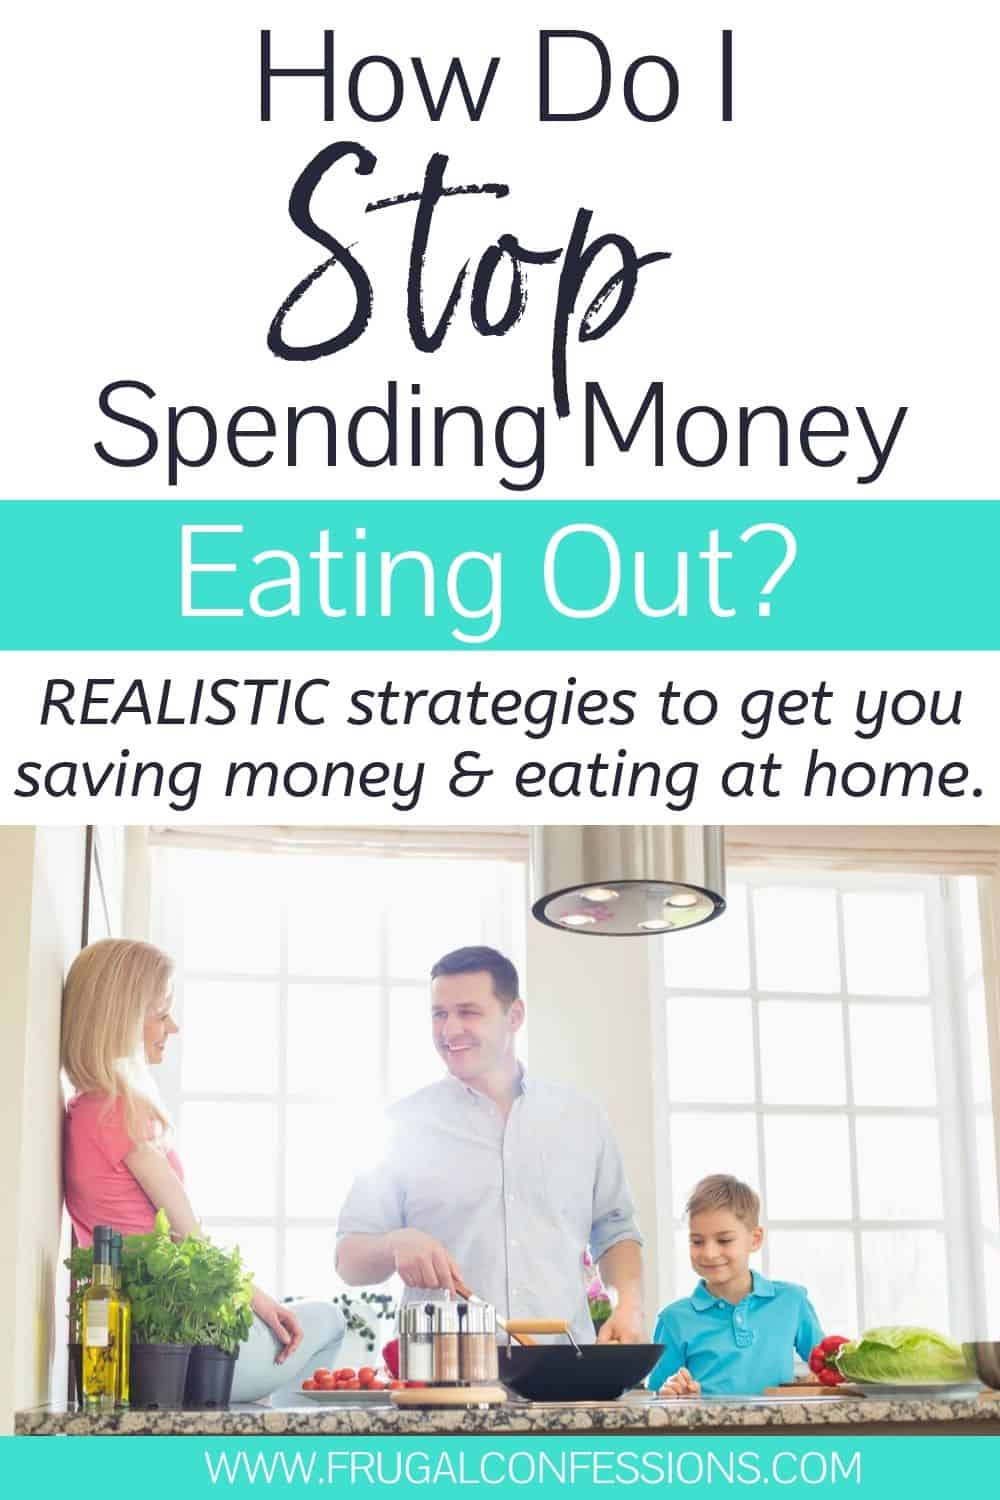 """family in kitchen cooking together, text overlay """"how do I stop spending money eating out?"""""""